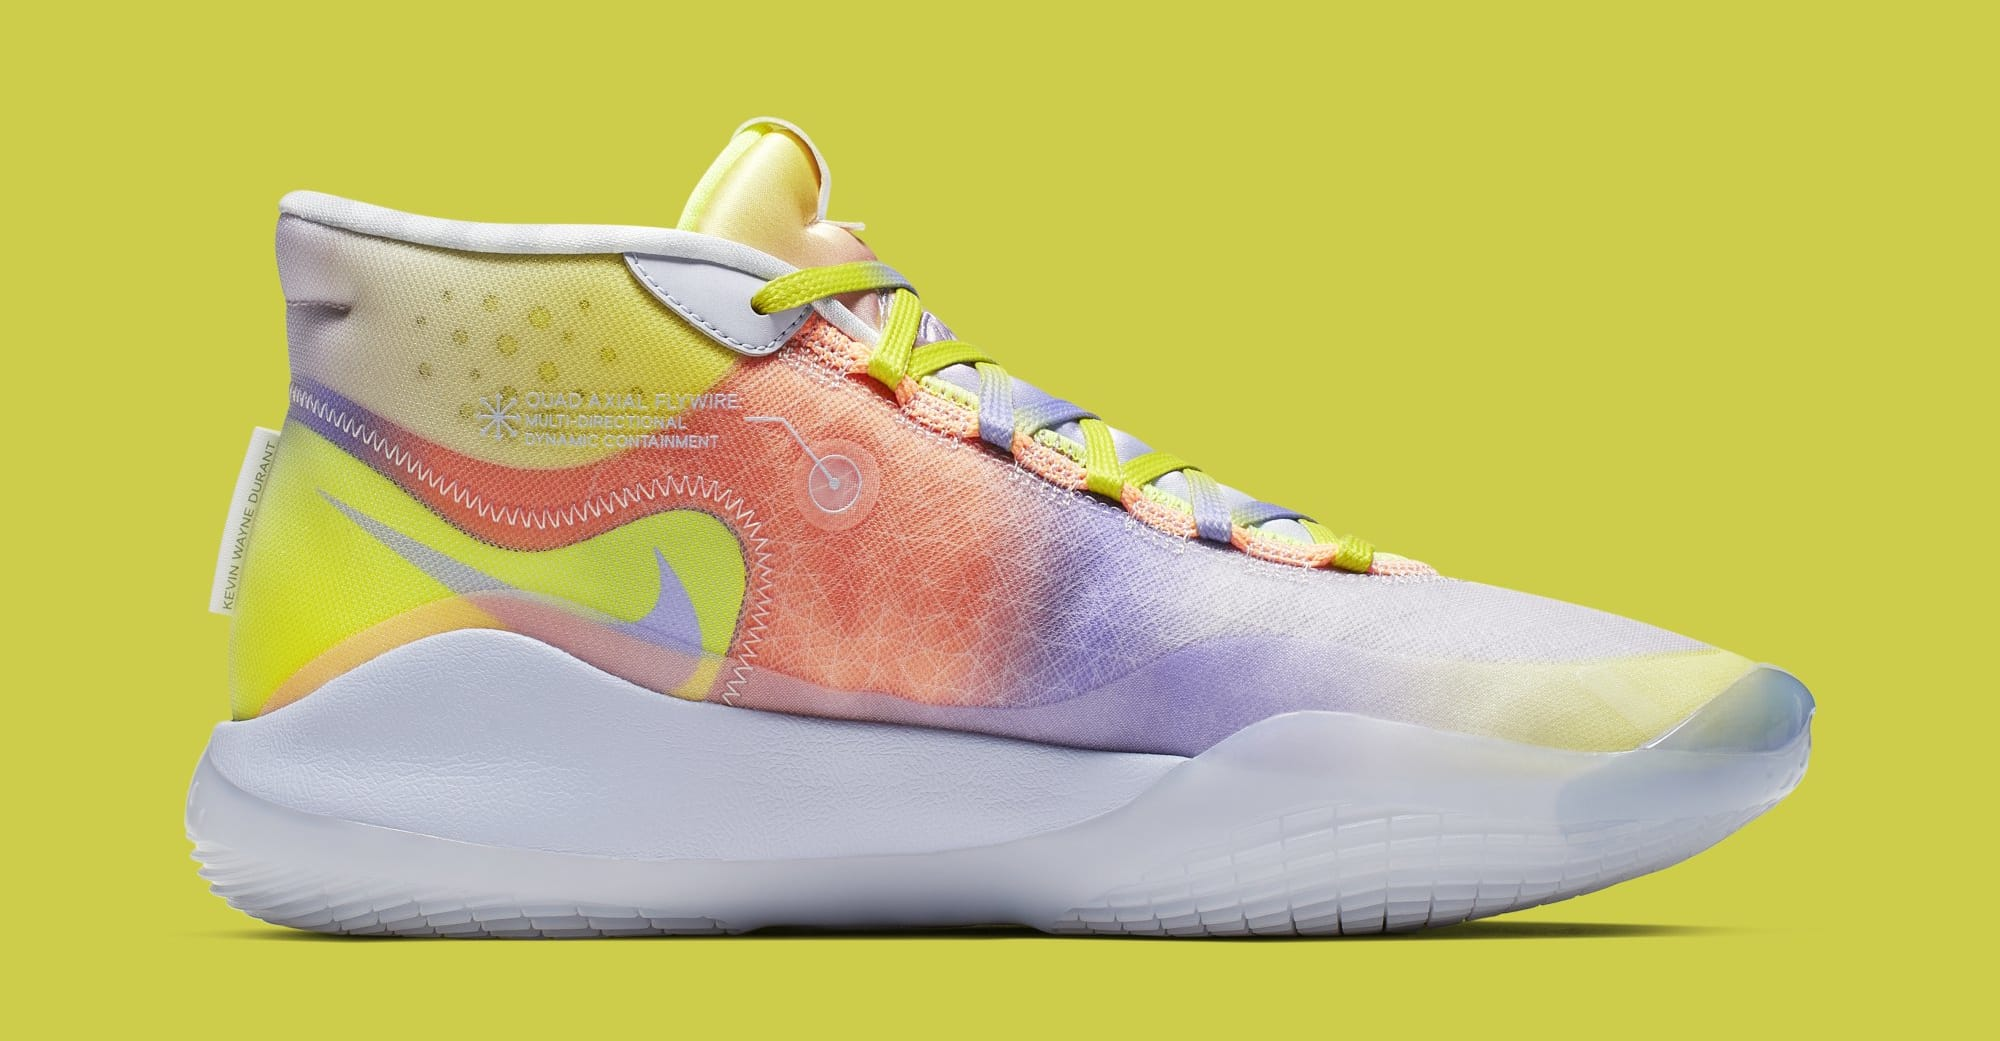 Nike KD 12 'EYBL' Multi-Color CK1201-900 (Medial)